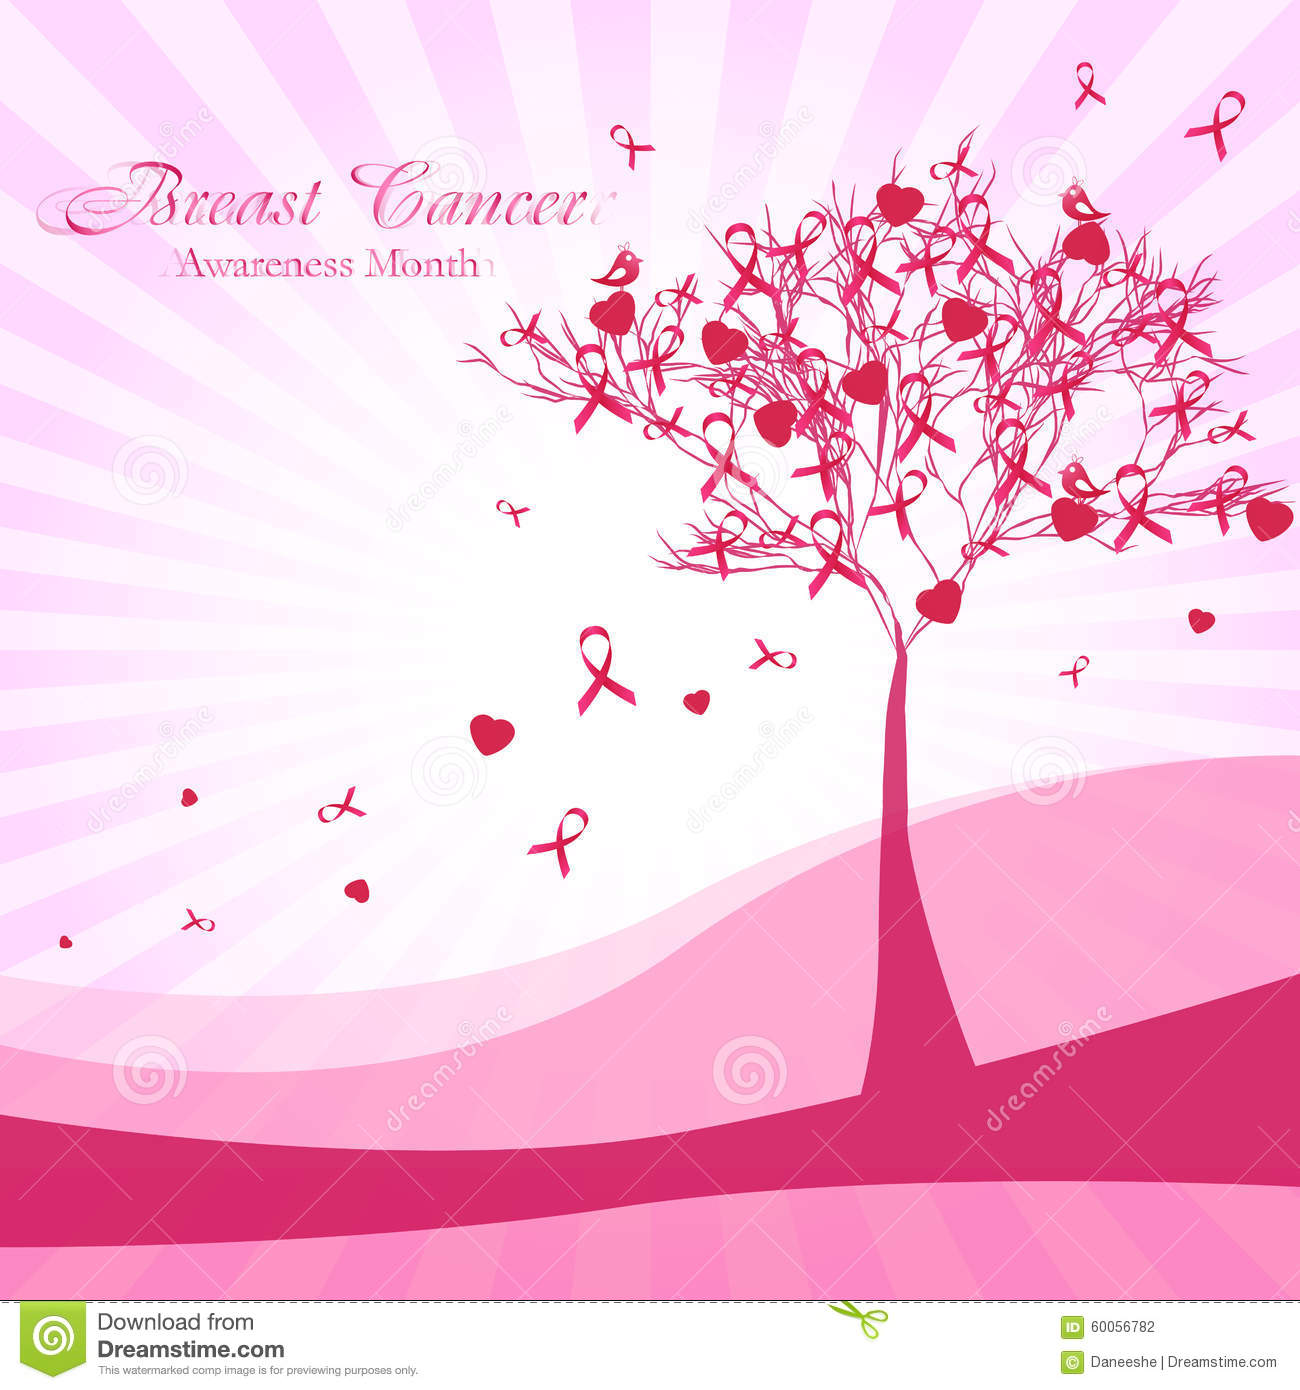 Bing Hd Wallpaper Fall Pink Tree With Ribbons And Hearts Breast Cancer Awareness